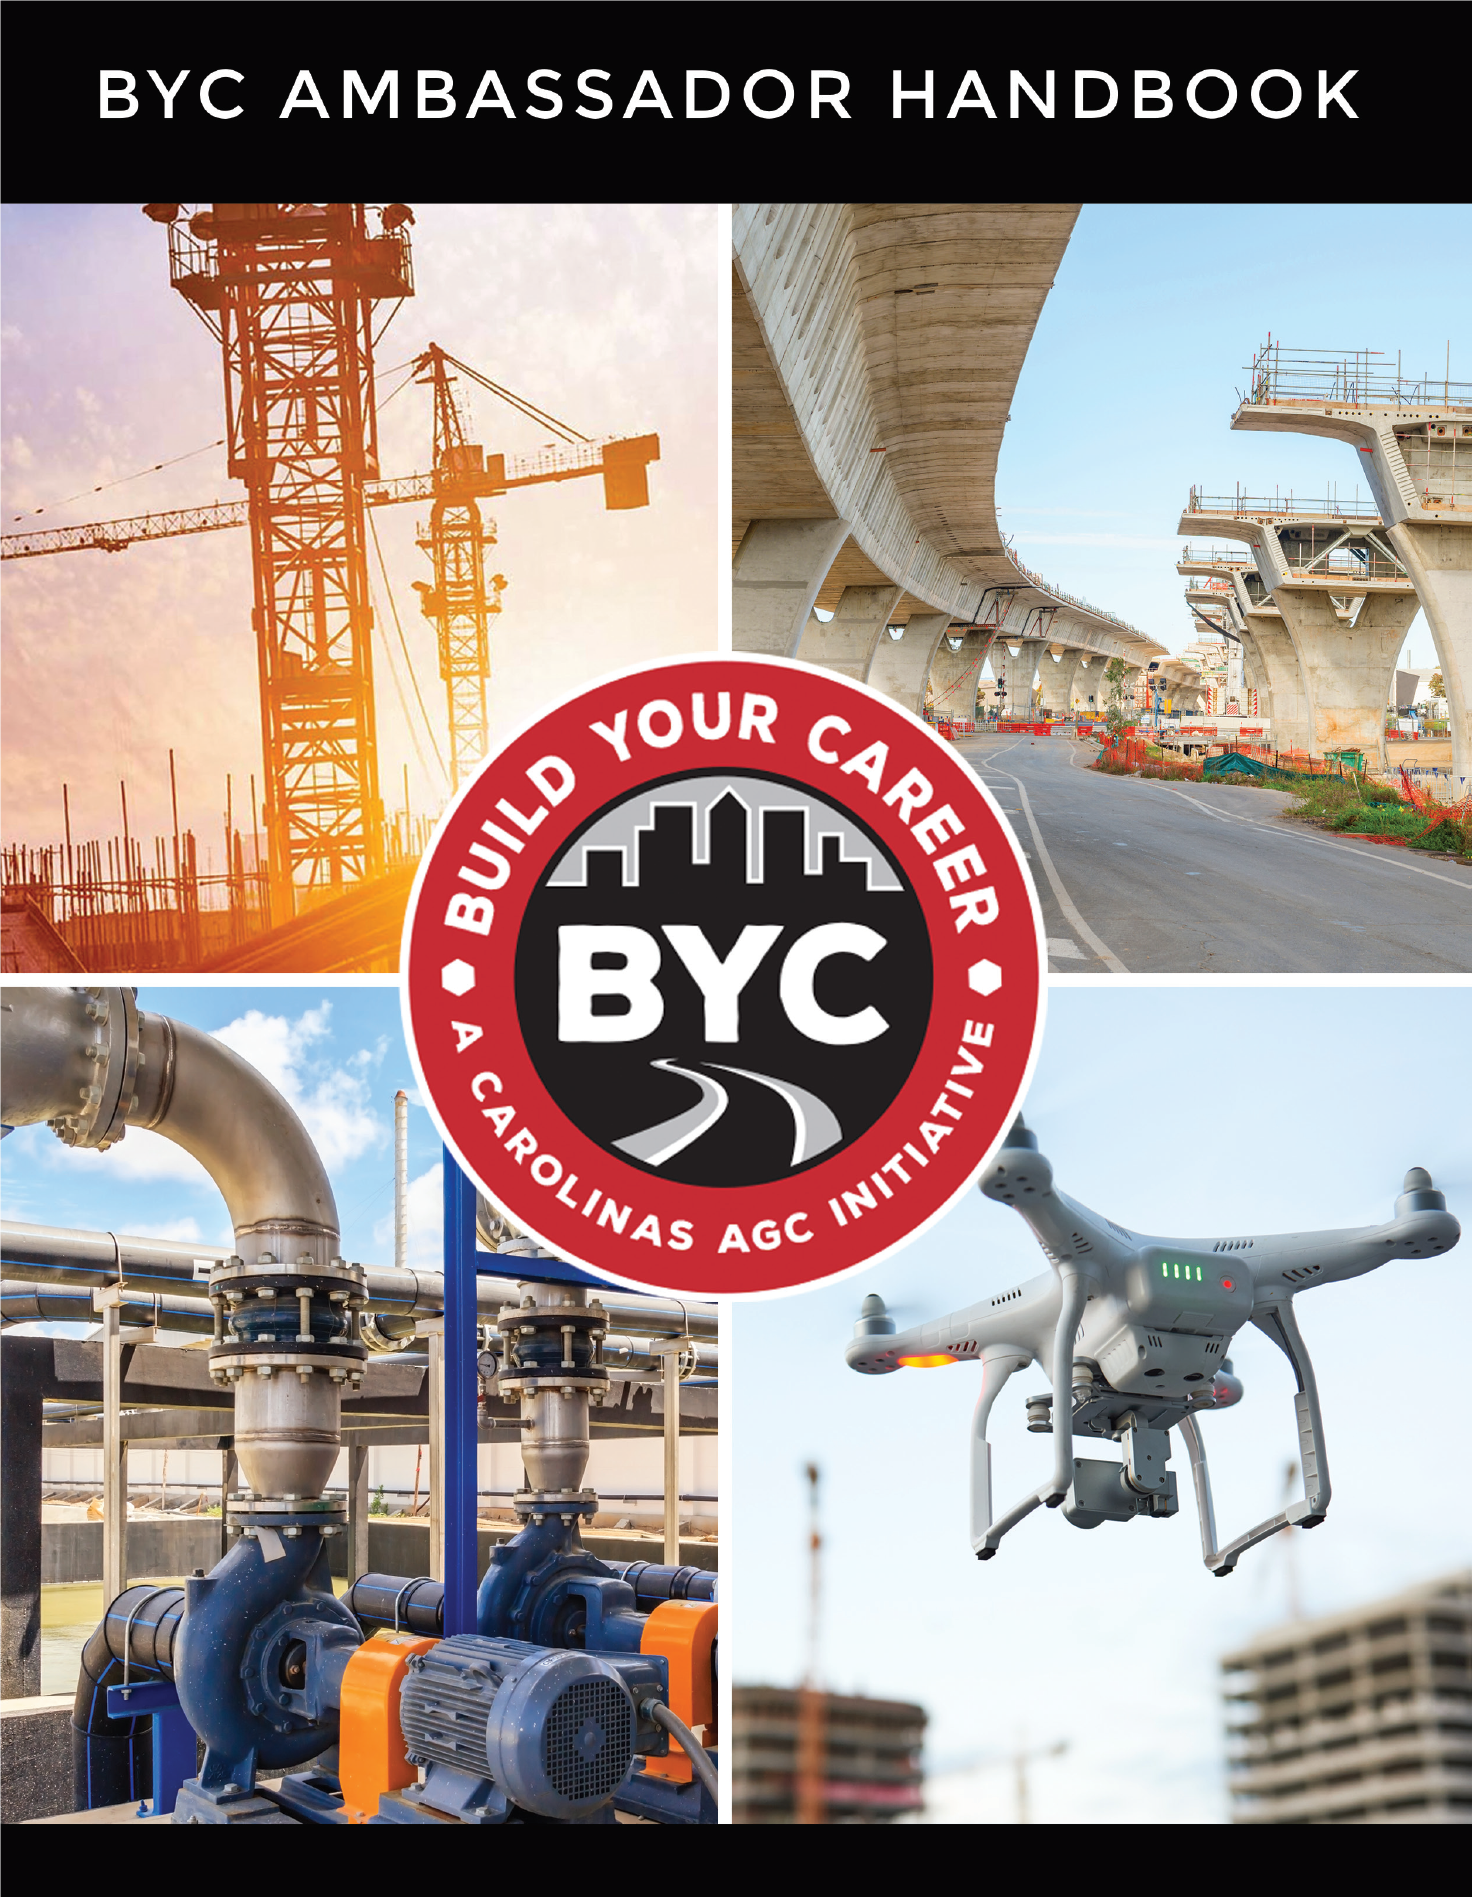 THE NEW BYC AMBASSADOR TOOLKITS ARE AVAILABLE!